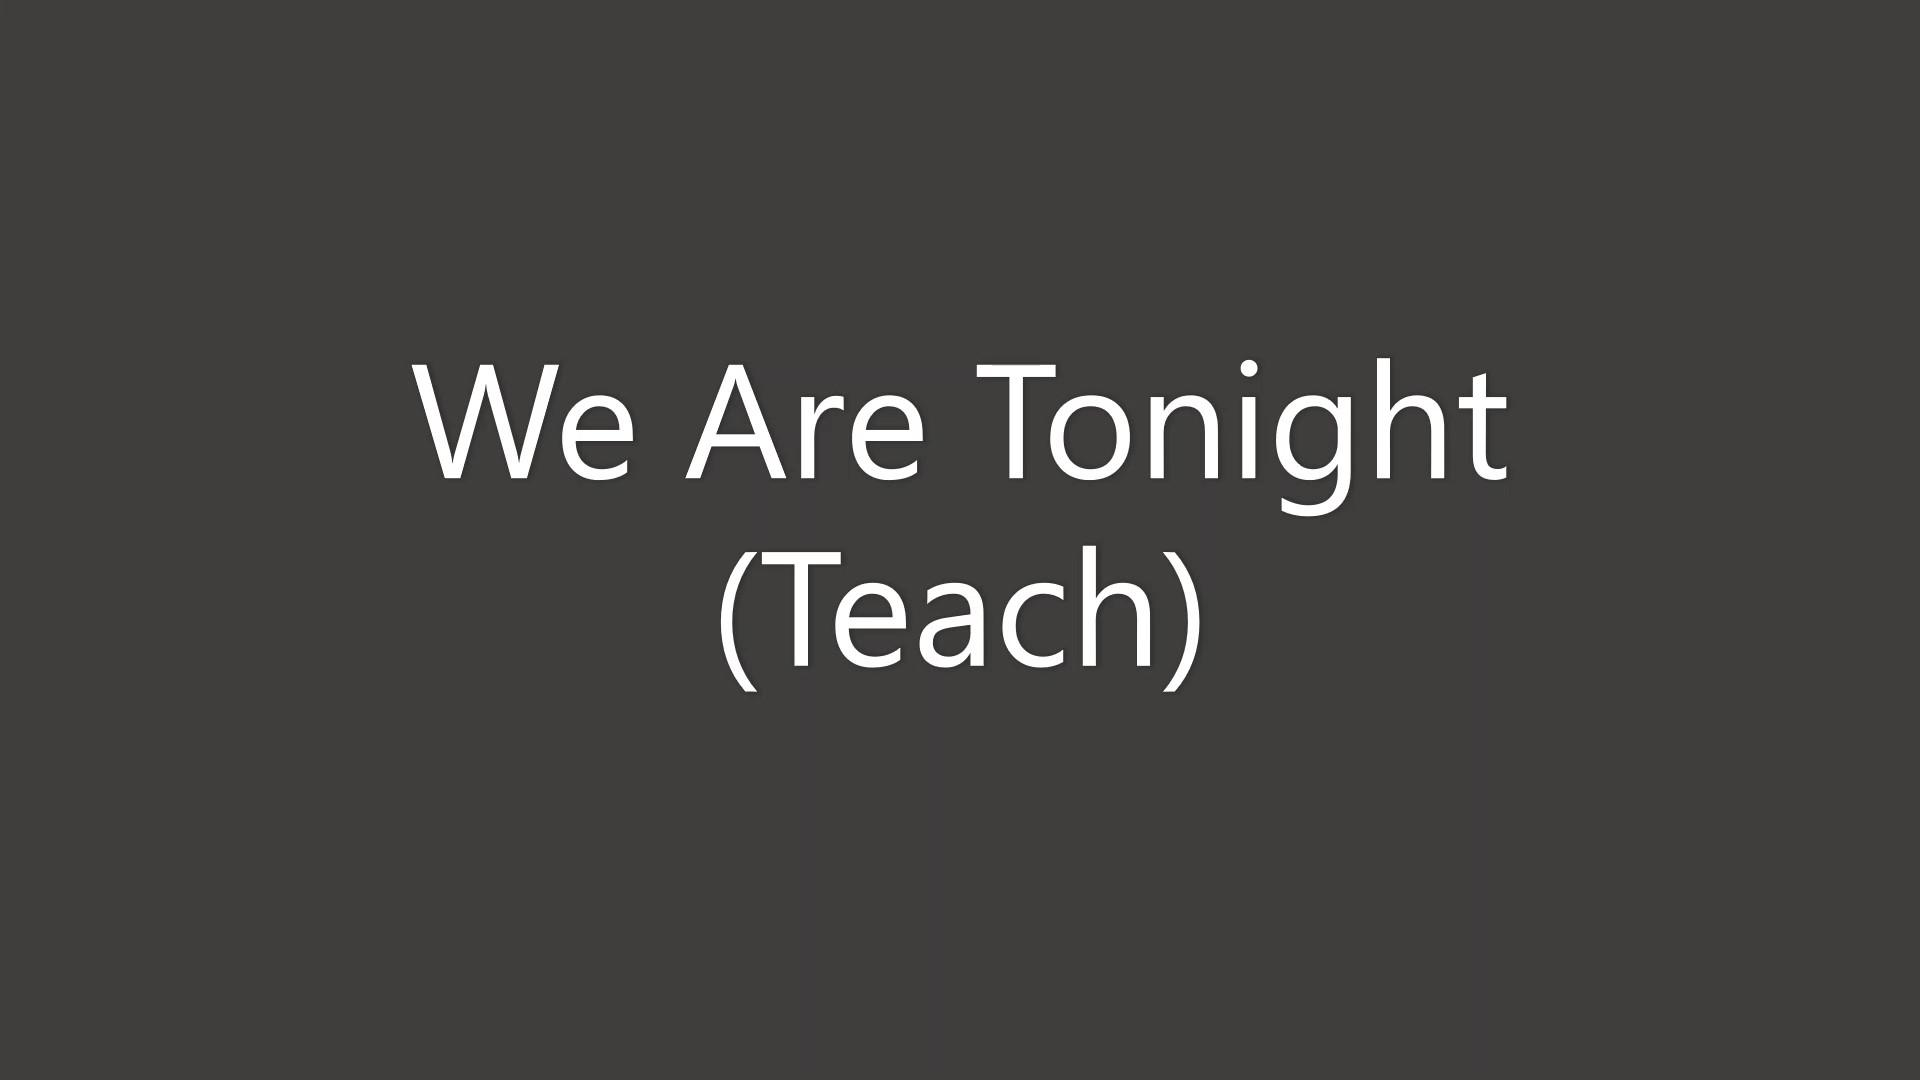 We Are Tonight Teach